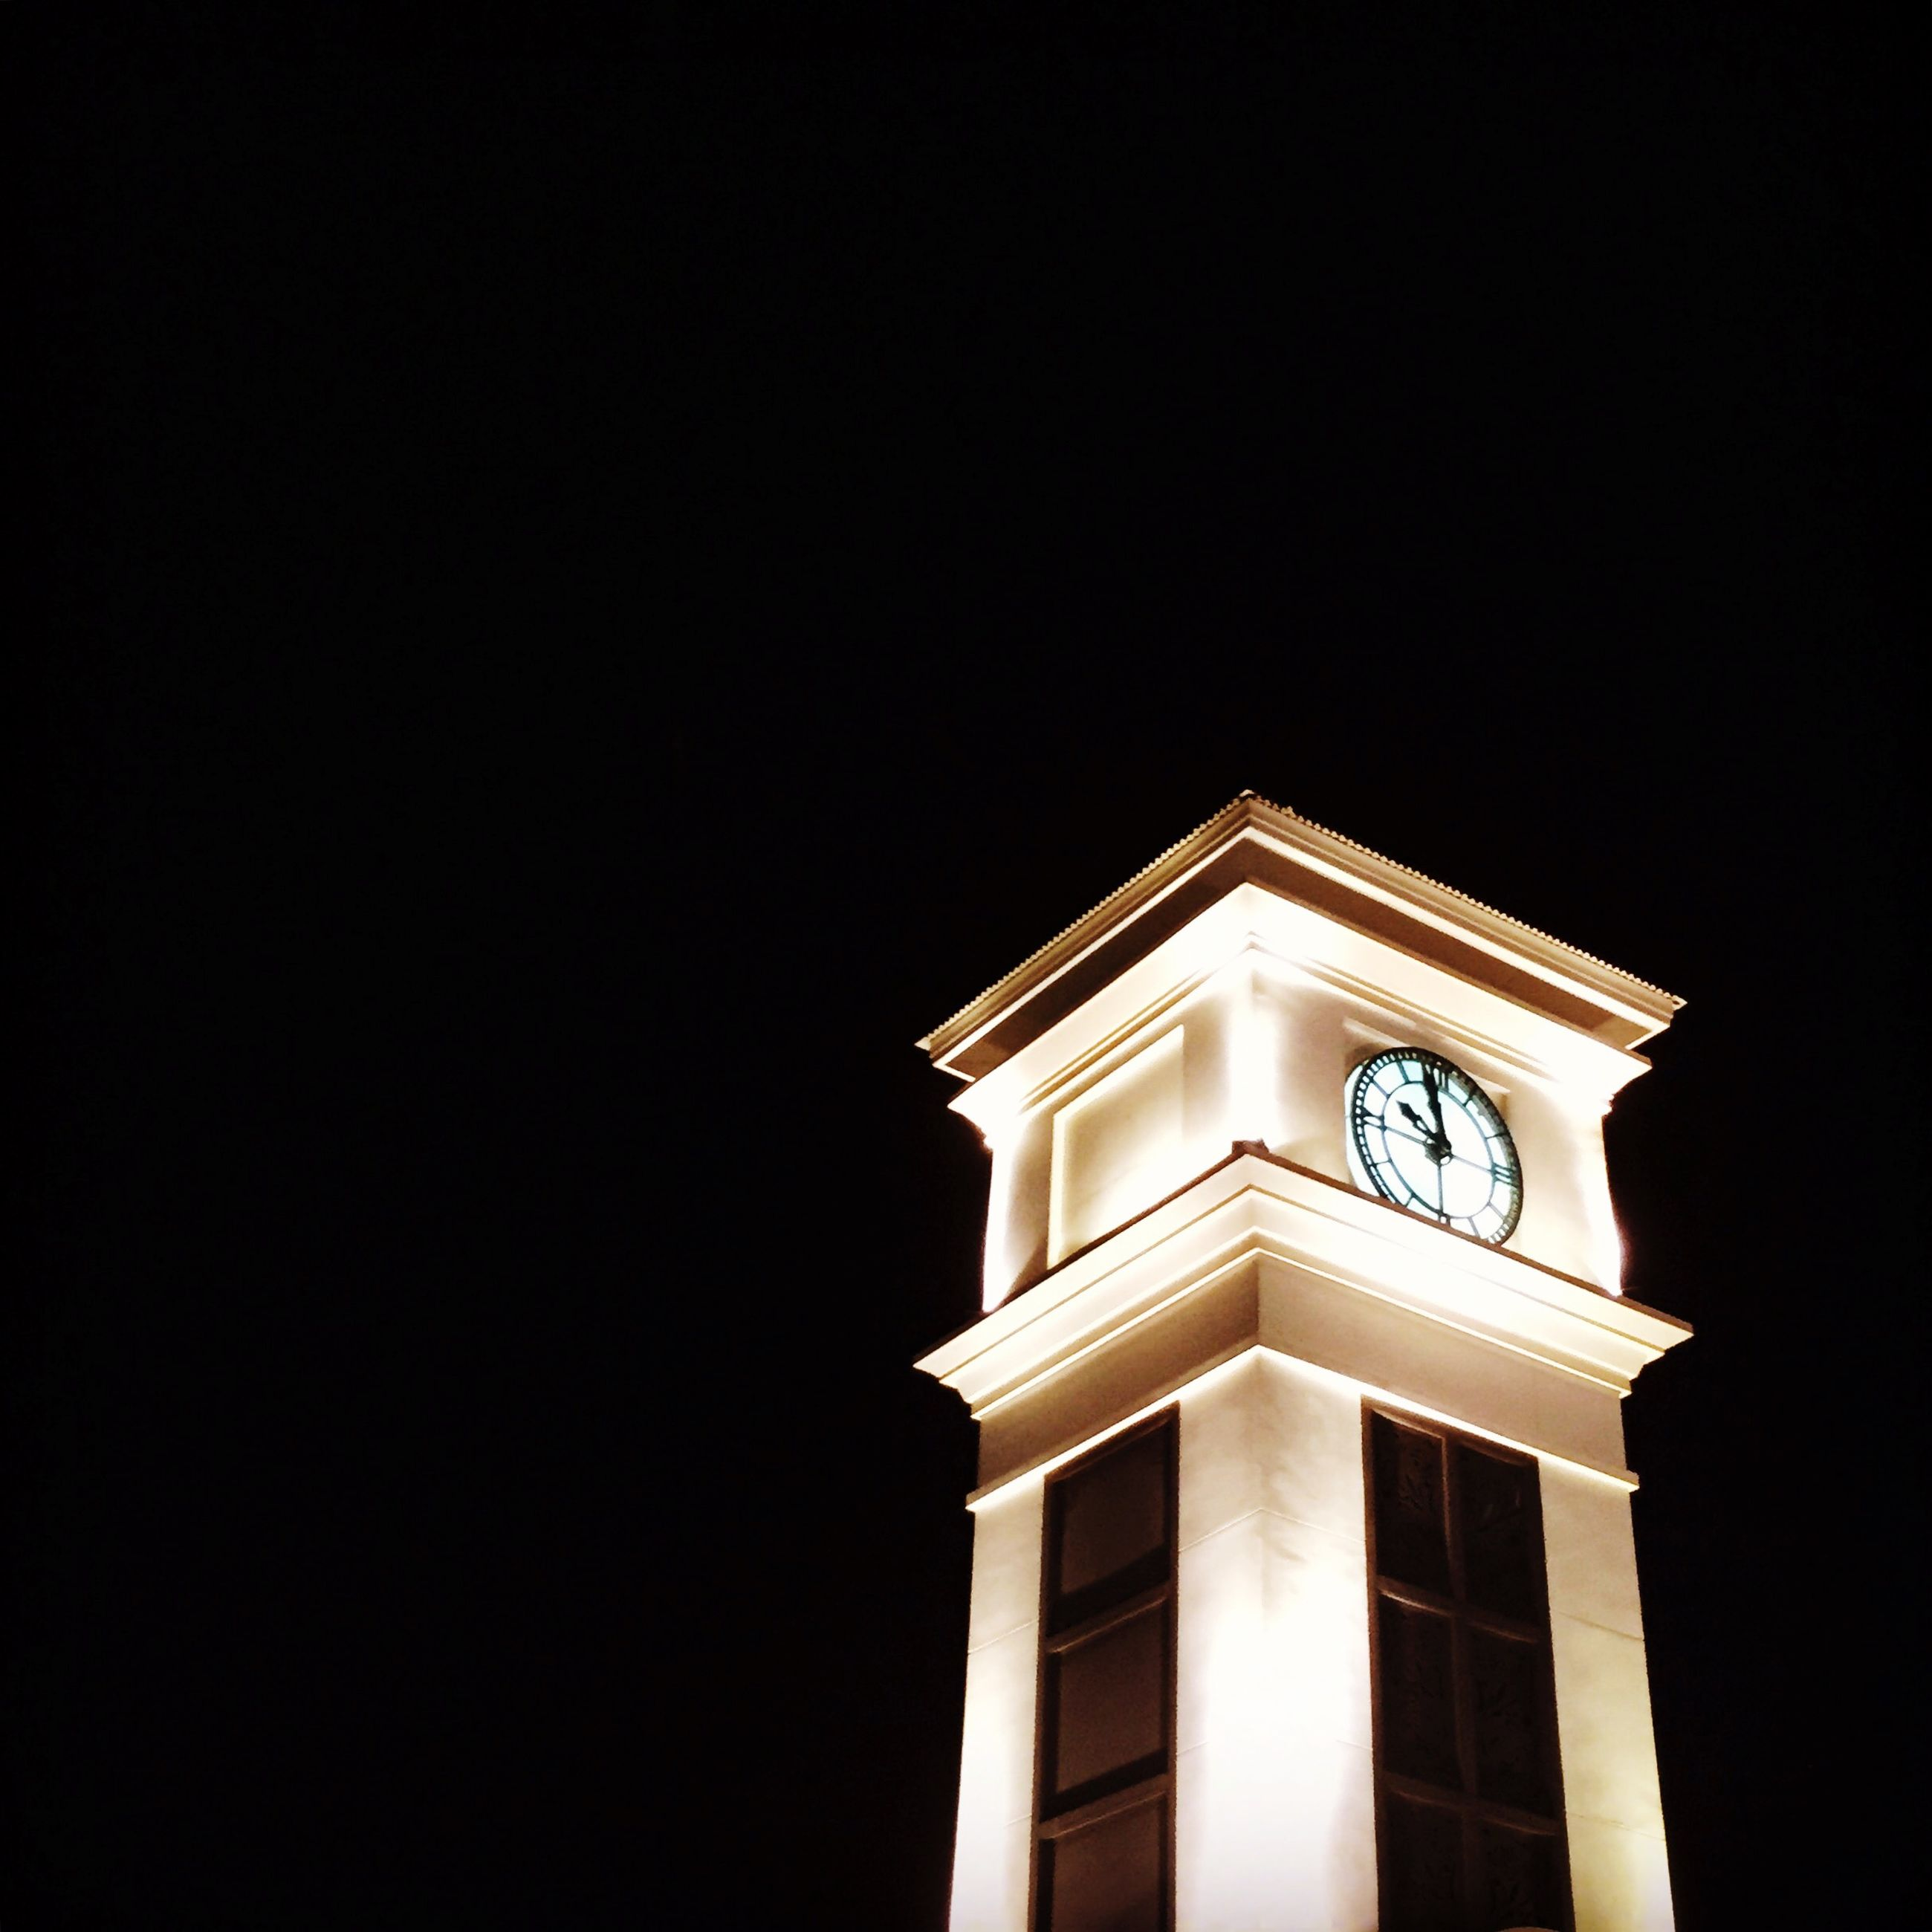 architecture, low angle view, clear sky, built structure, copy space, building exterior, night, high section, history, tower, no people, outdoors, illuminated, city, clock tower, travel destinations, building, tall - high, sky, famous place